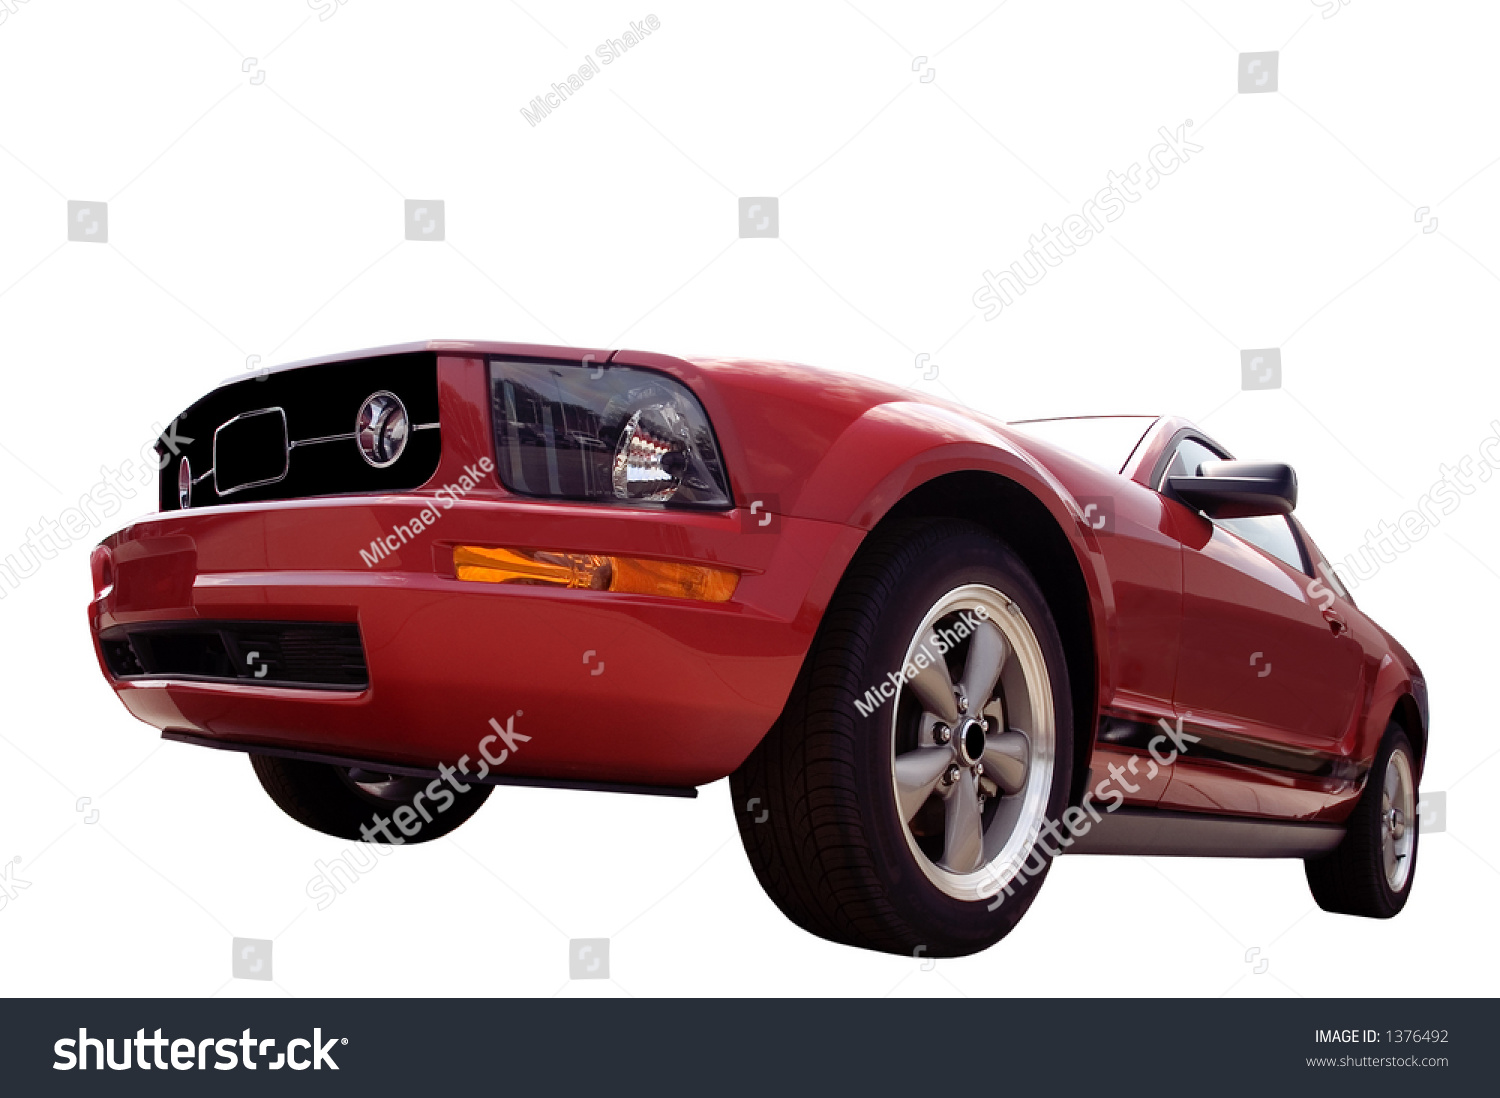 Red Sports Car Isolated On White Stock Photo 1376492 ...